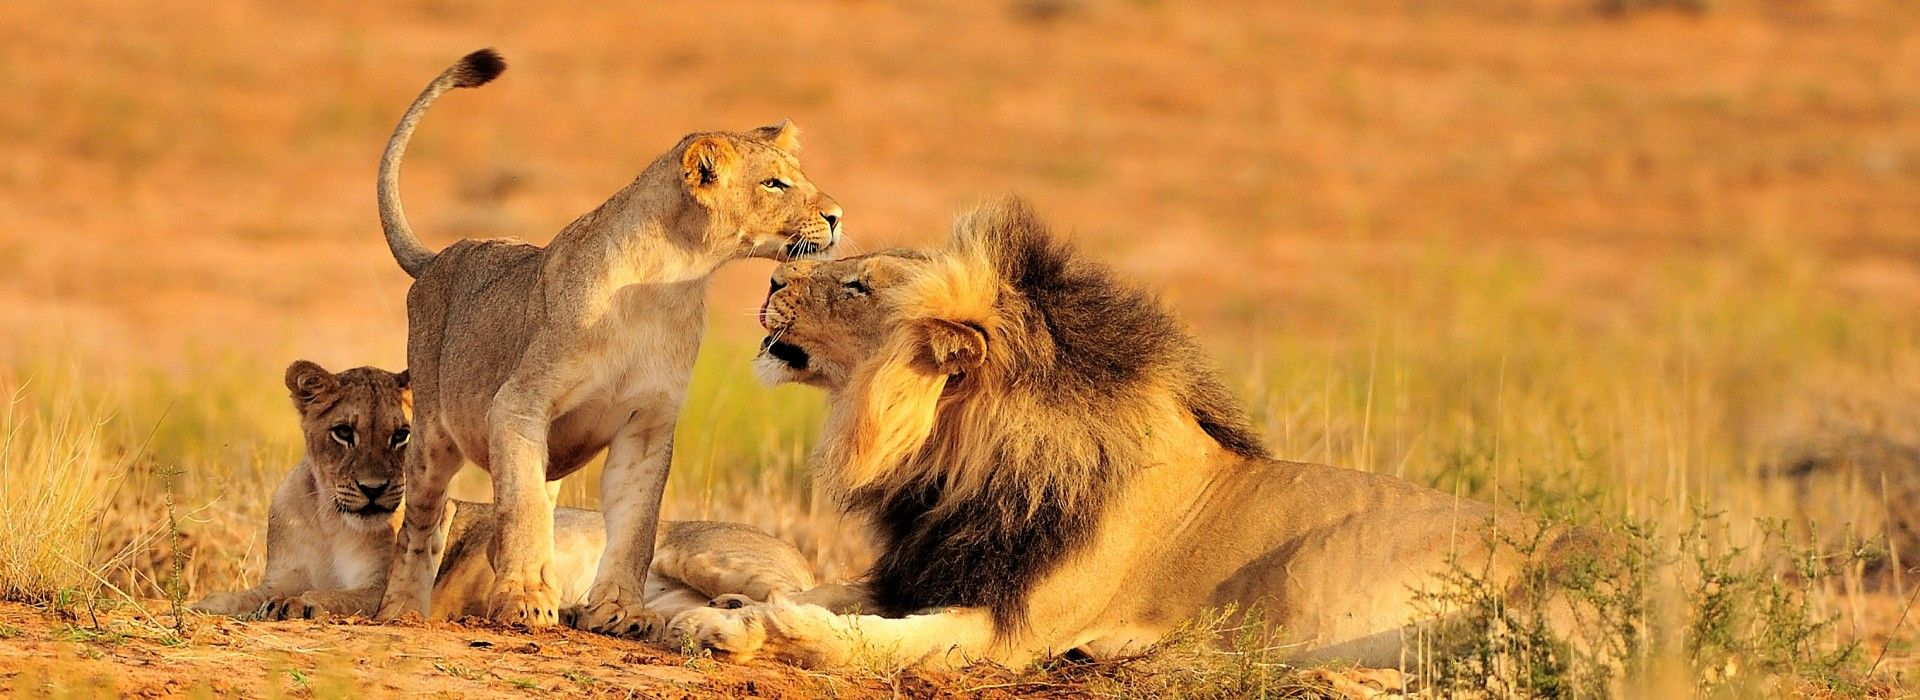 Natural landmarks sightseeing Tours in South Africa